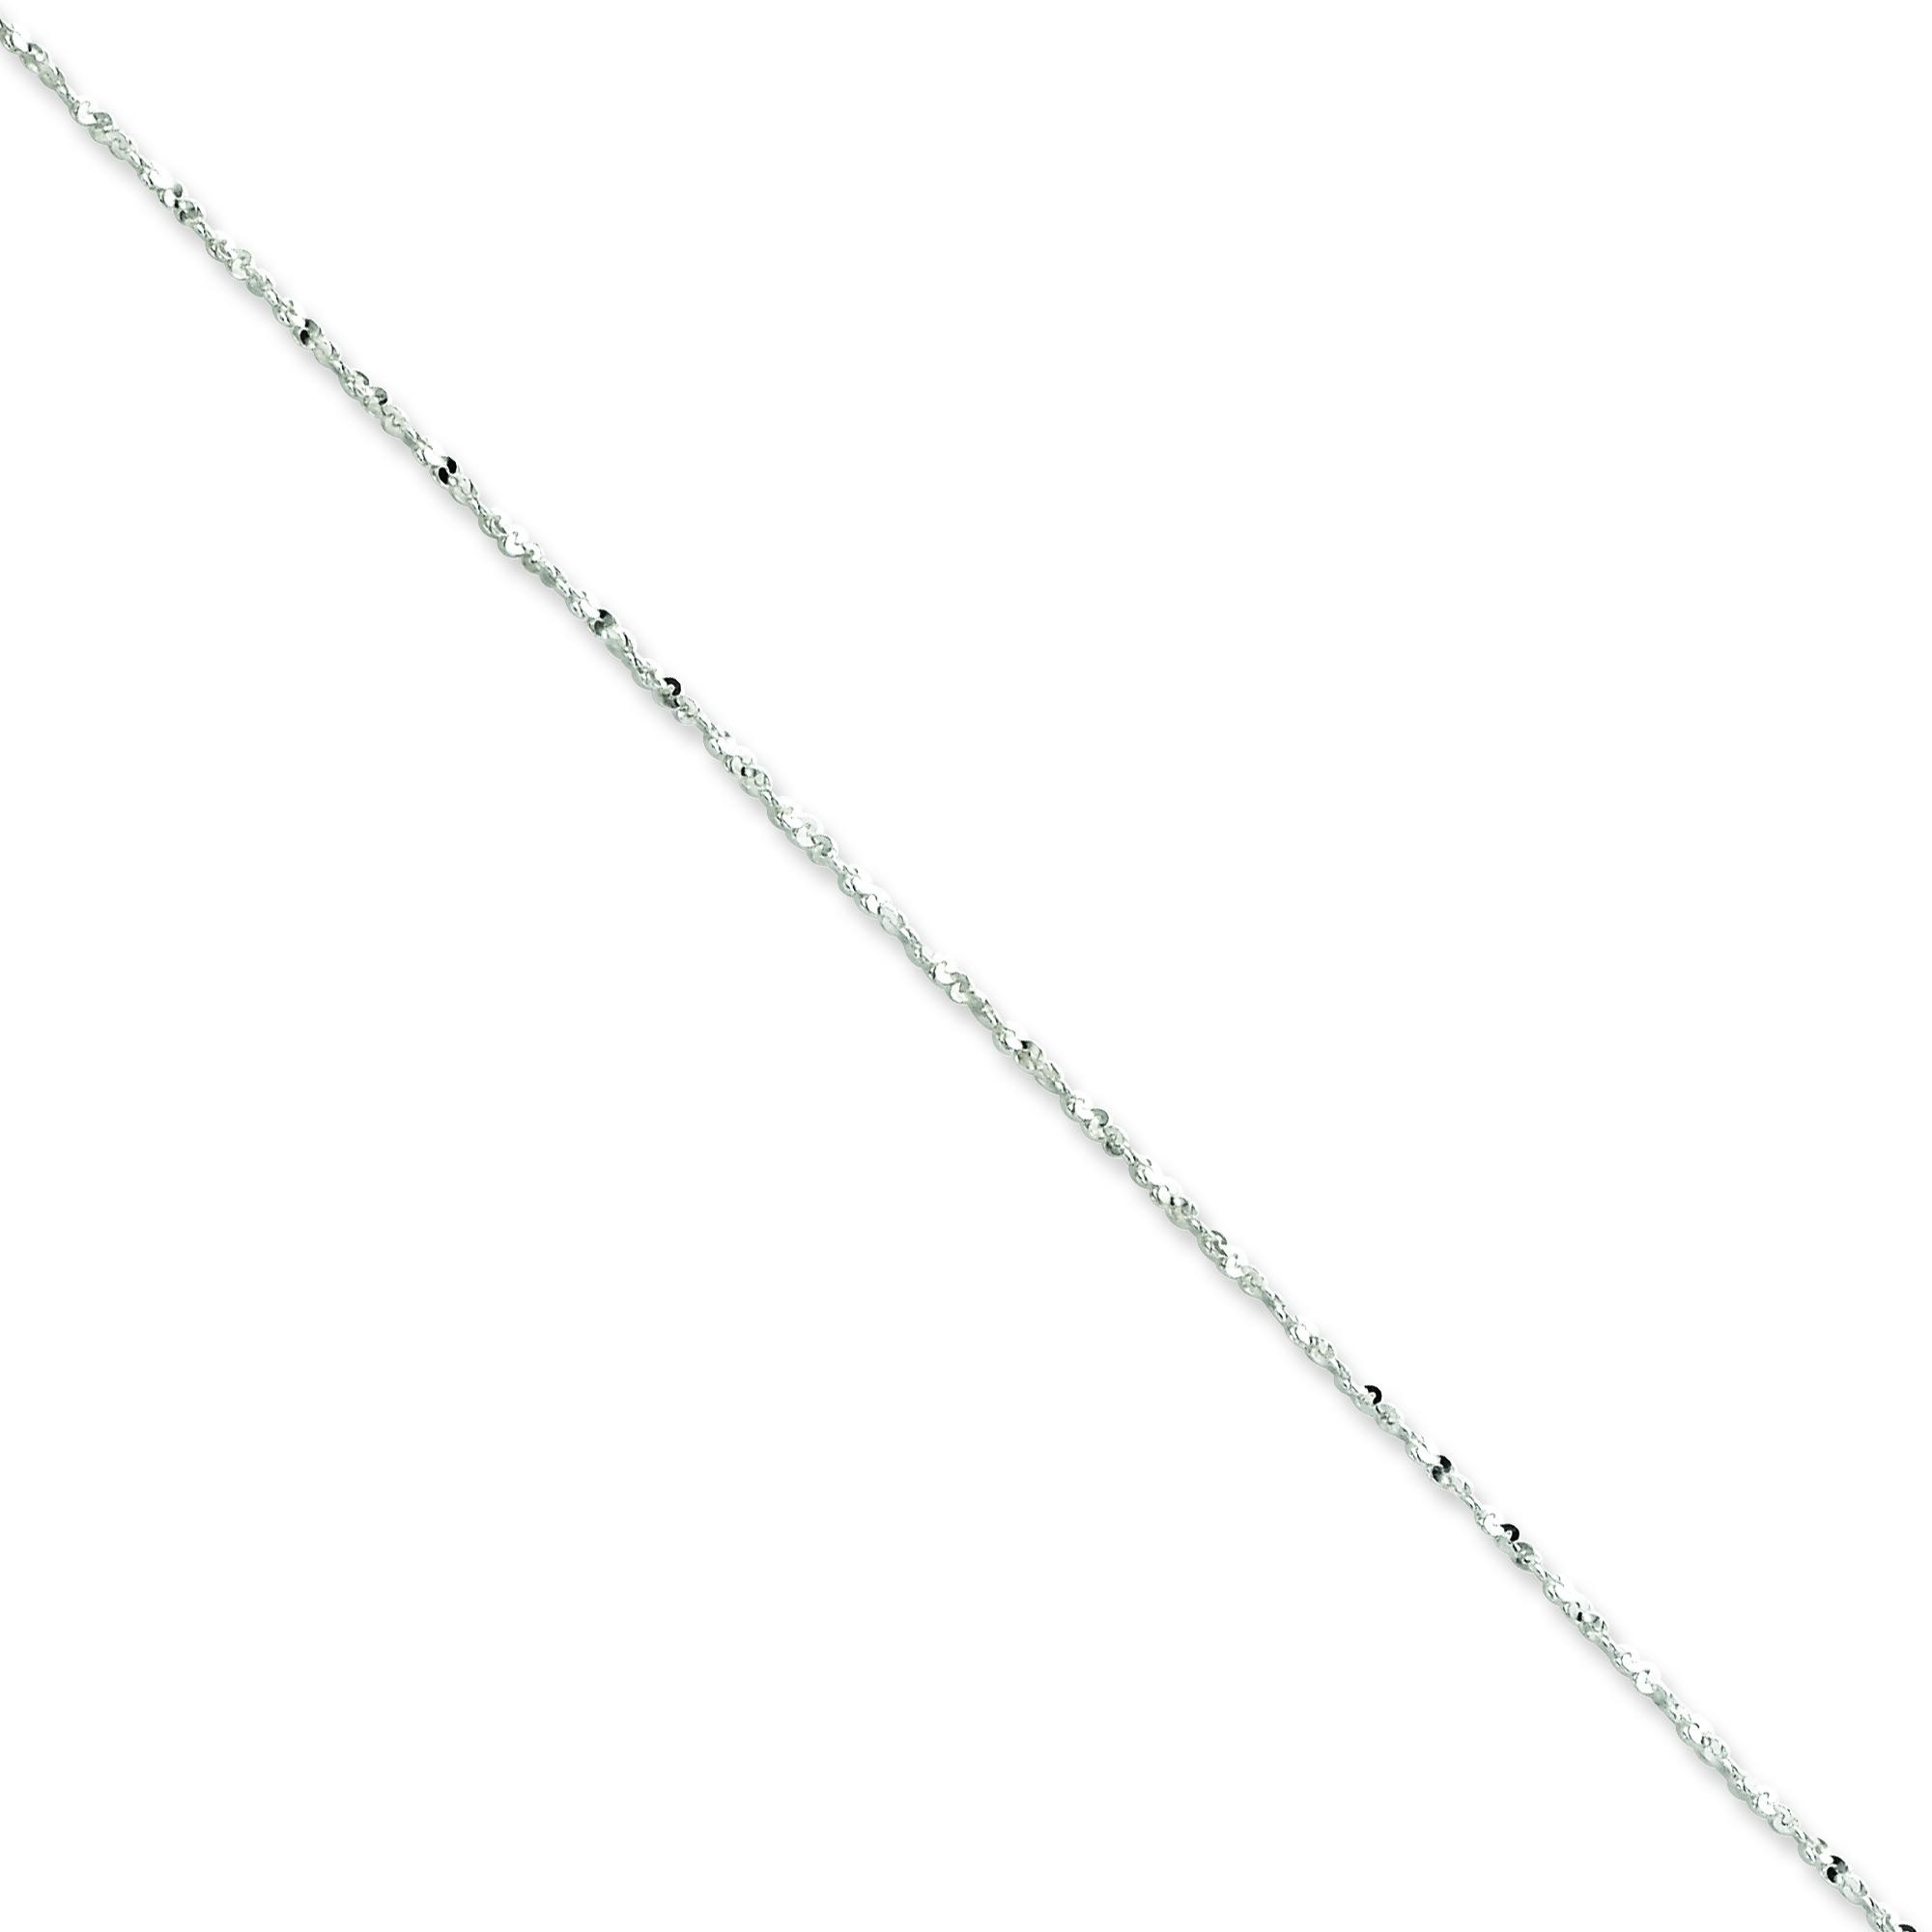 Sterling Silver 16 inch 1.20 mm Twisted Serpentine Fancy Choker Necklace